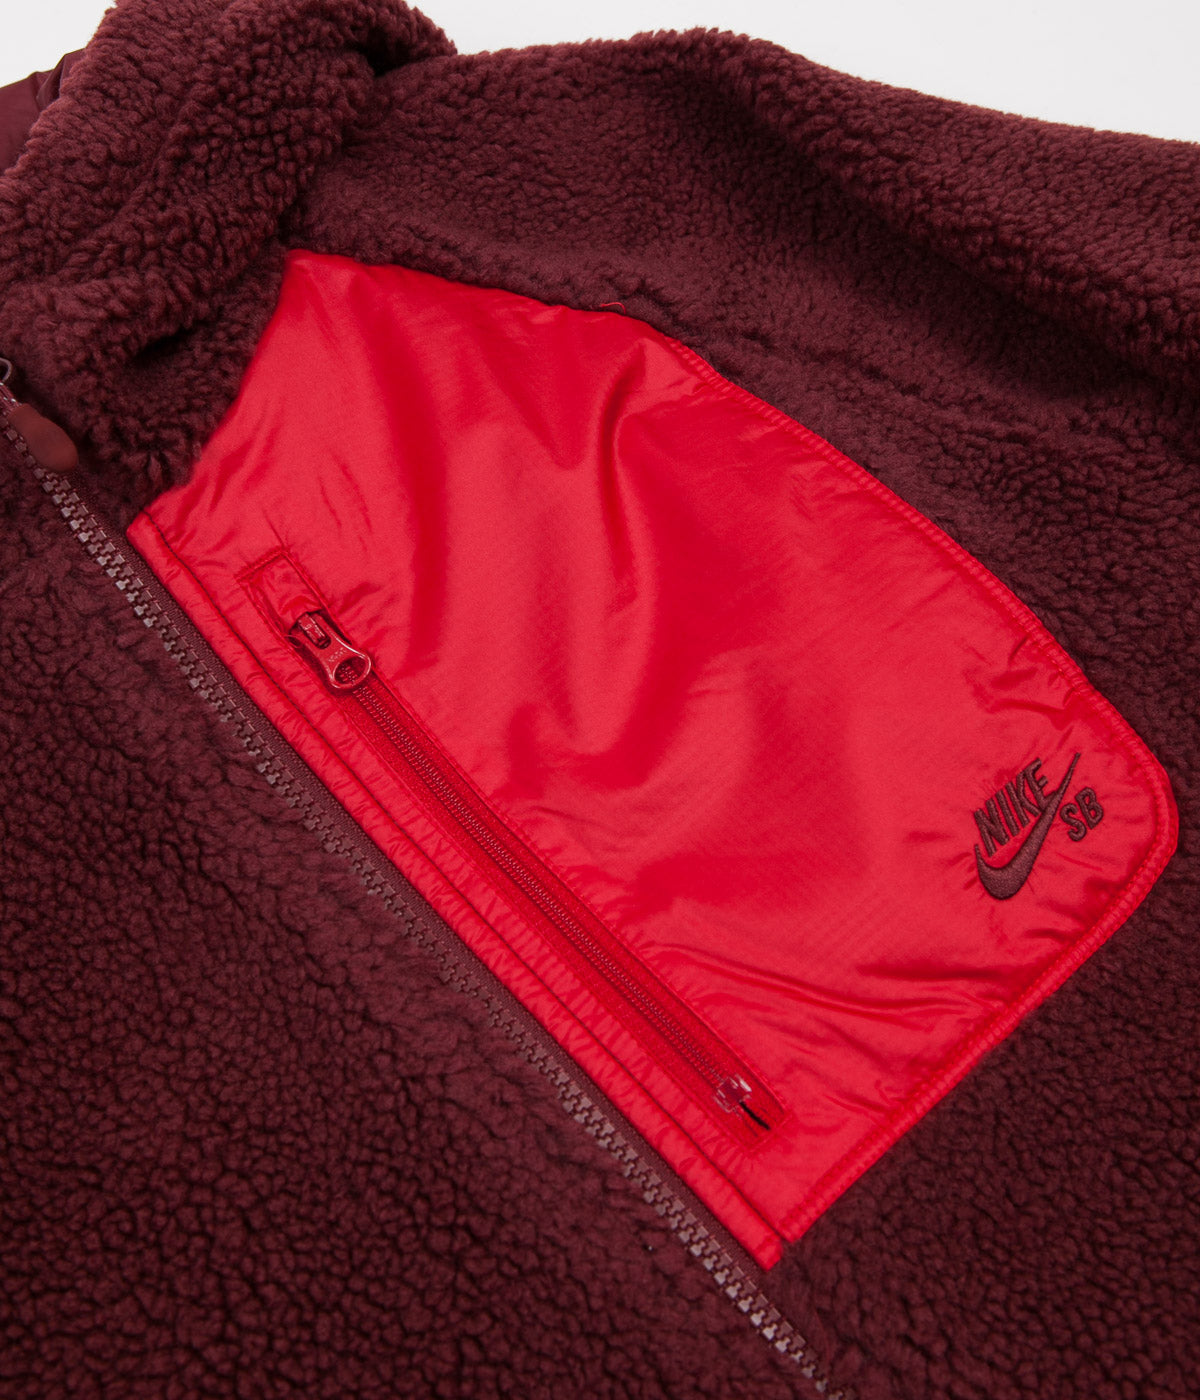 Nike SB Everett Hoodie - Dark Team Red / Gym Red / Dark Team Red